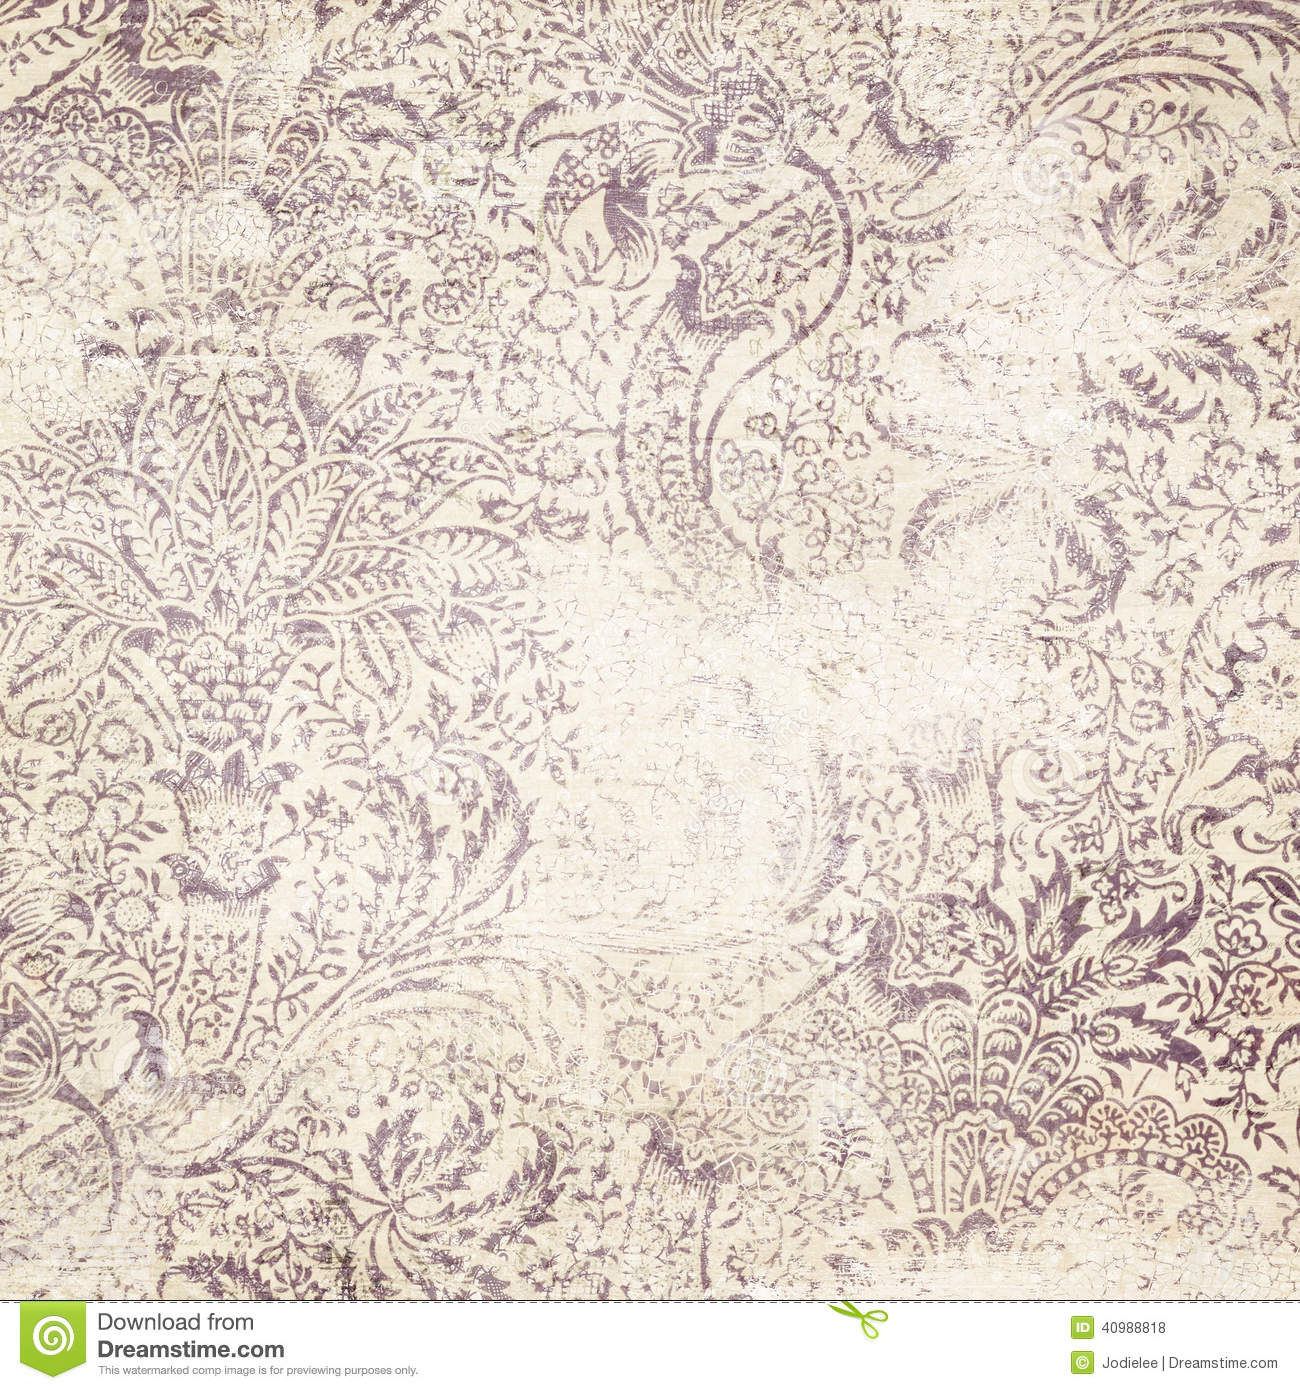 Distressed Floral Damask Background Stock Photo Image